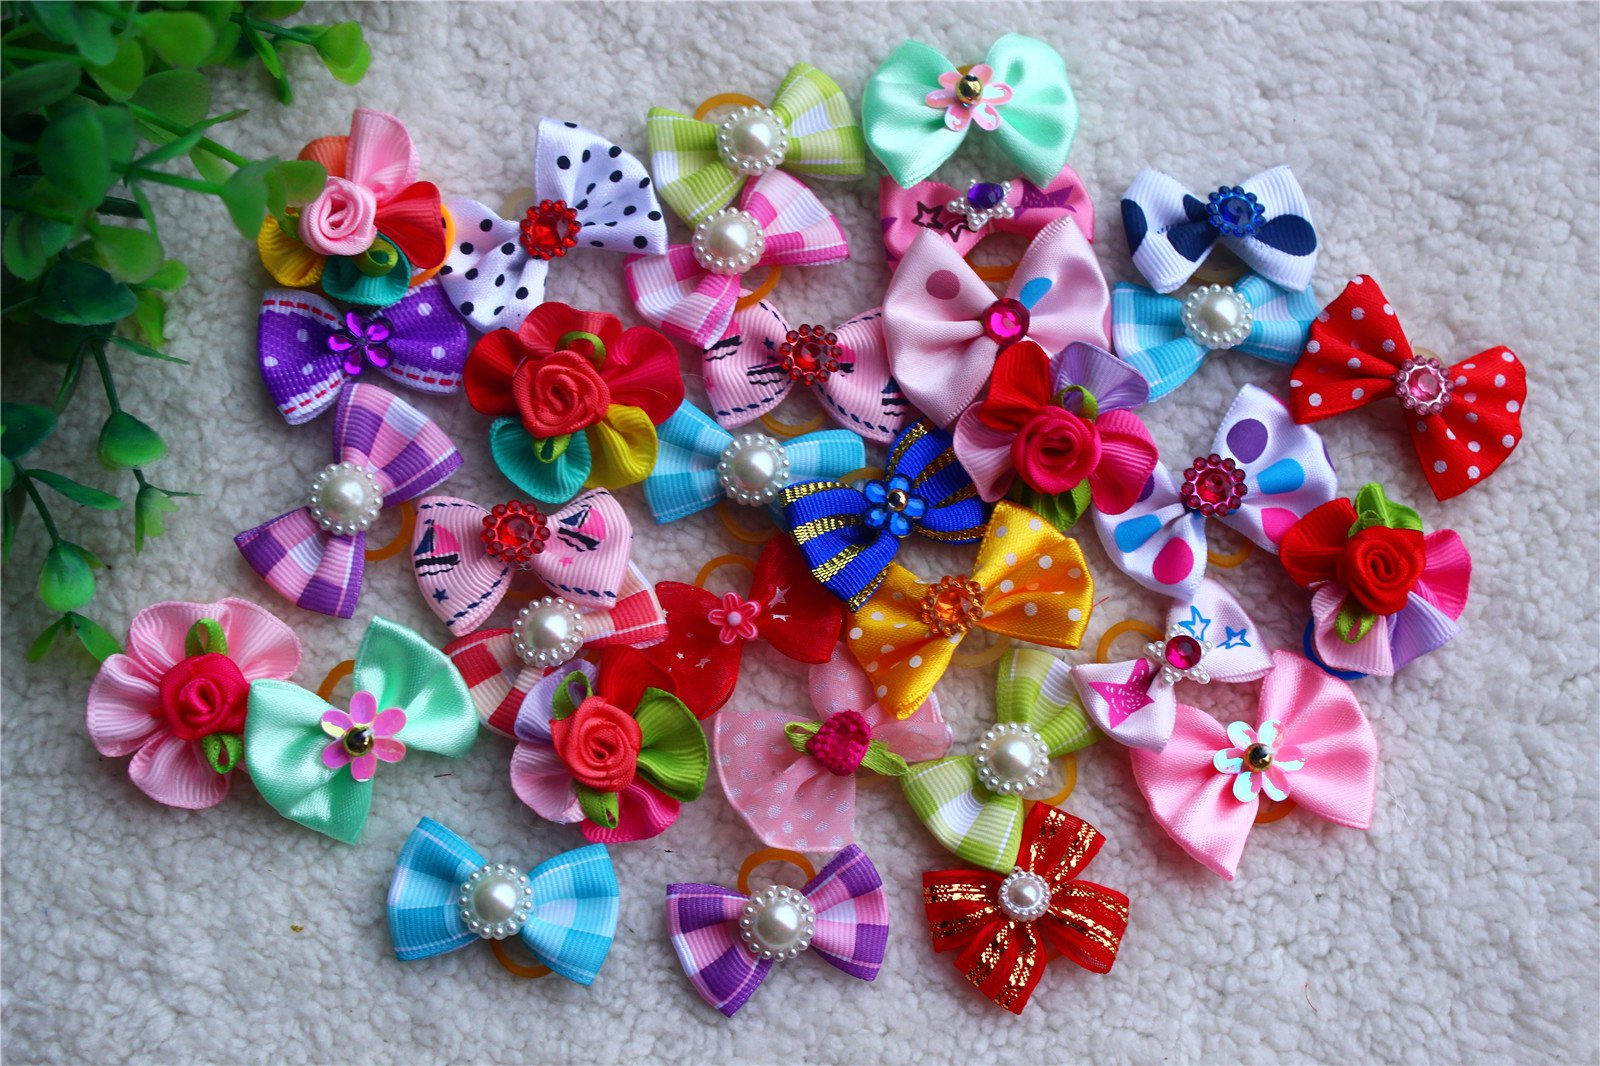 Cute New Dog Hair Bows Mix Designs Rhinestone Pearls Styles Dog Bows Pet Grooming Products Mix Colors Pet Hair Bows Topknot Rubber Bands 100pcs- Pack